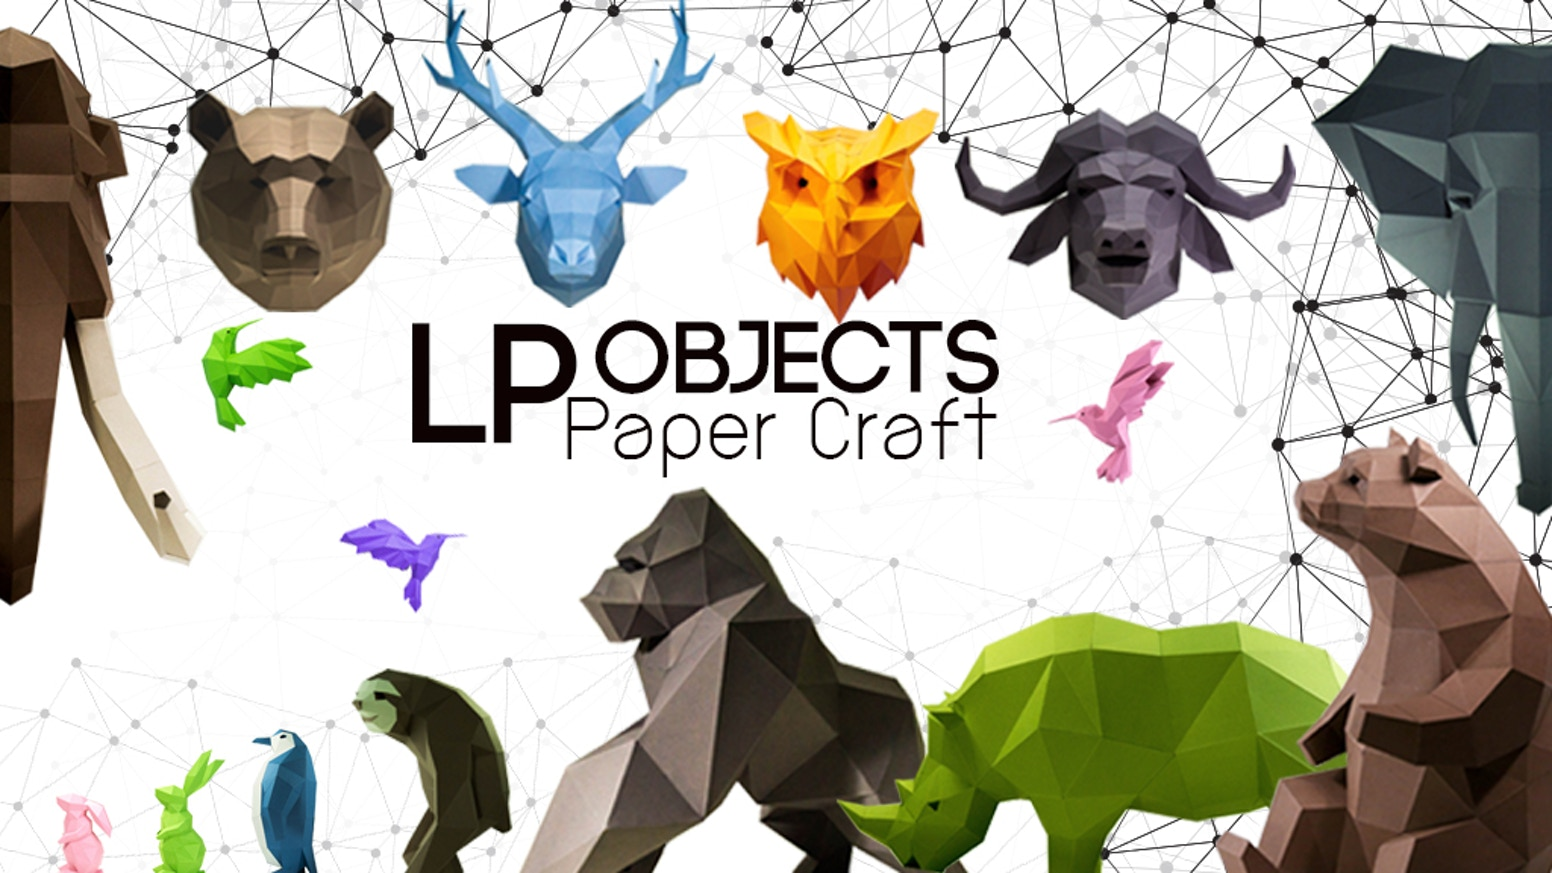 Diy papercraft art for your home by lpobjects by lpobjects you can decor at your space and decor you inspiration with our paper craft animals jeuxipadfo Image collections